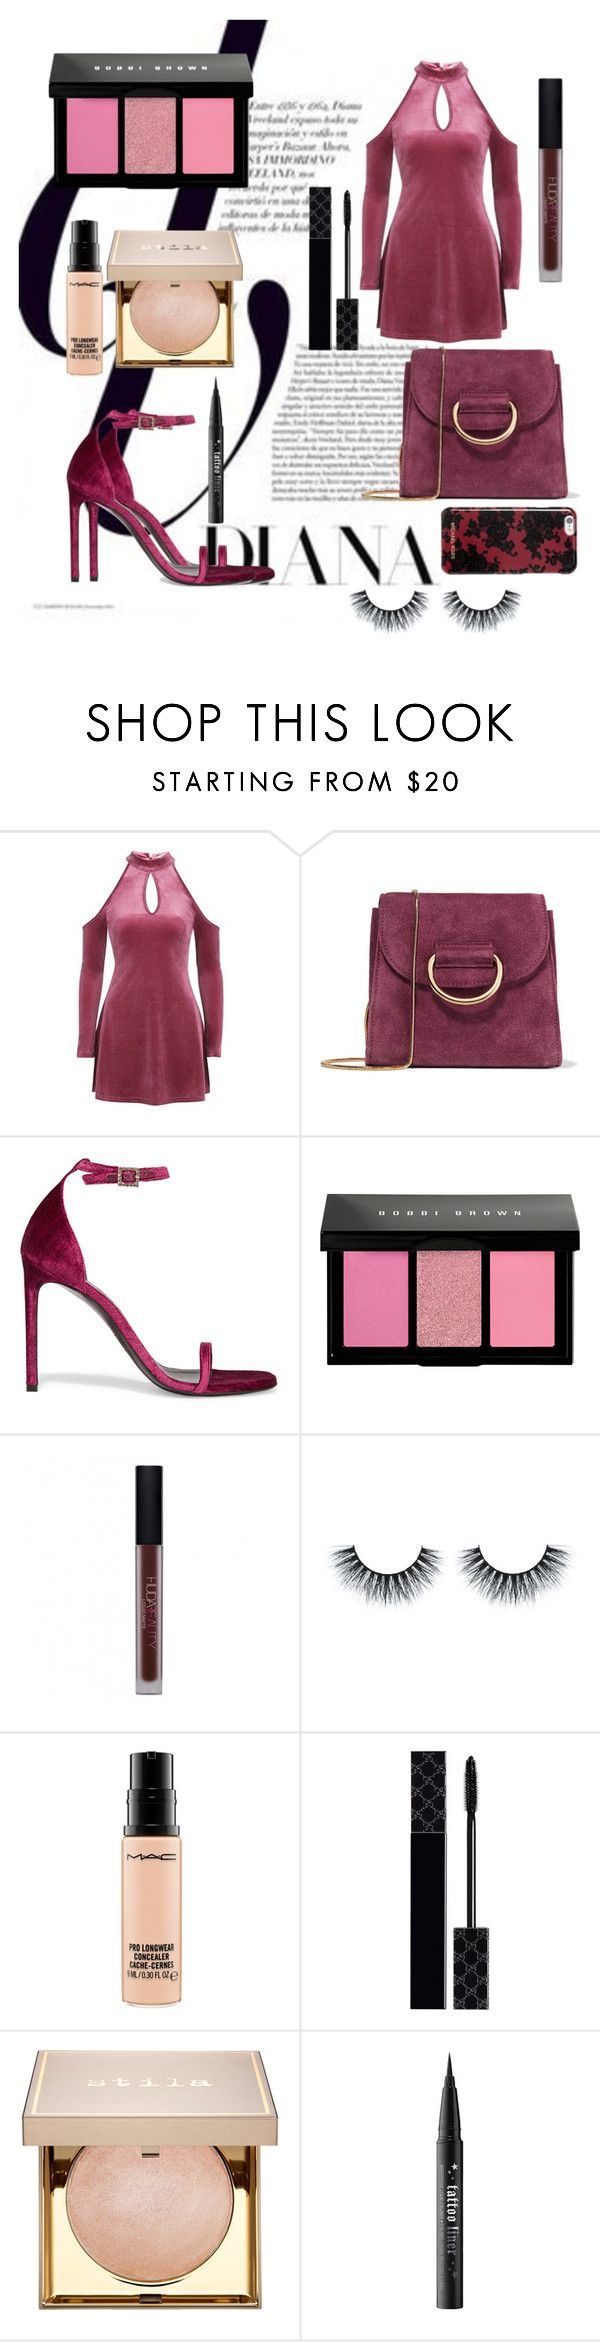 """Velvet Style"" by maria-cristina-7 ❤ liked on Polyvore featuring Little Liffner, Yves Saint Laurent, Bobbi Brown Cosmetics, Huda Beauty, MAC Cosmetics, Gucci, Stila, Kat Von D and Michael Kors"